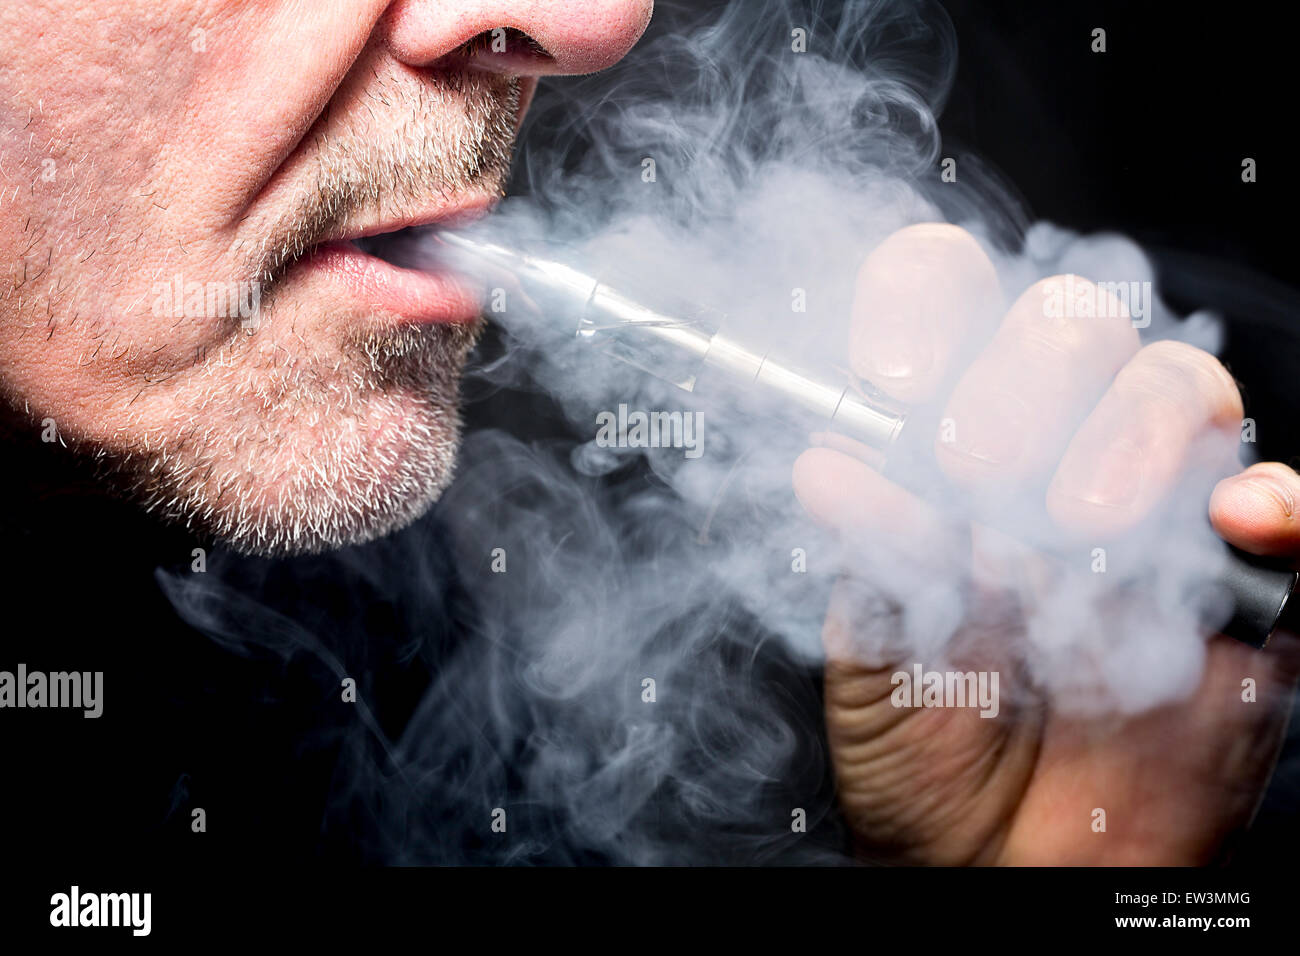 close up portrait of a man smoking an e-cigarette - Stock Image